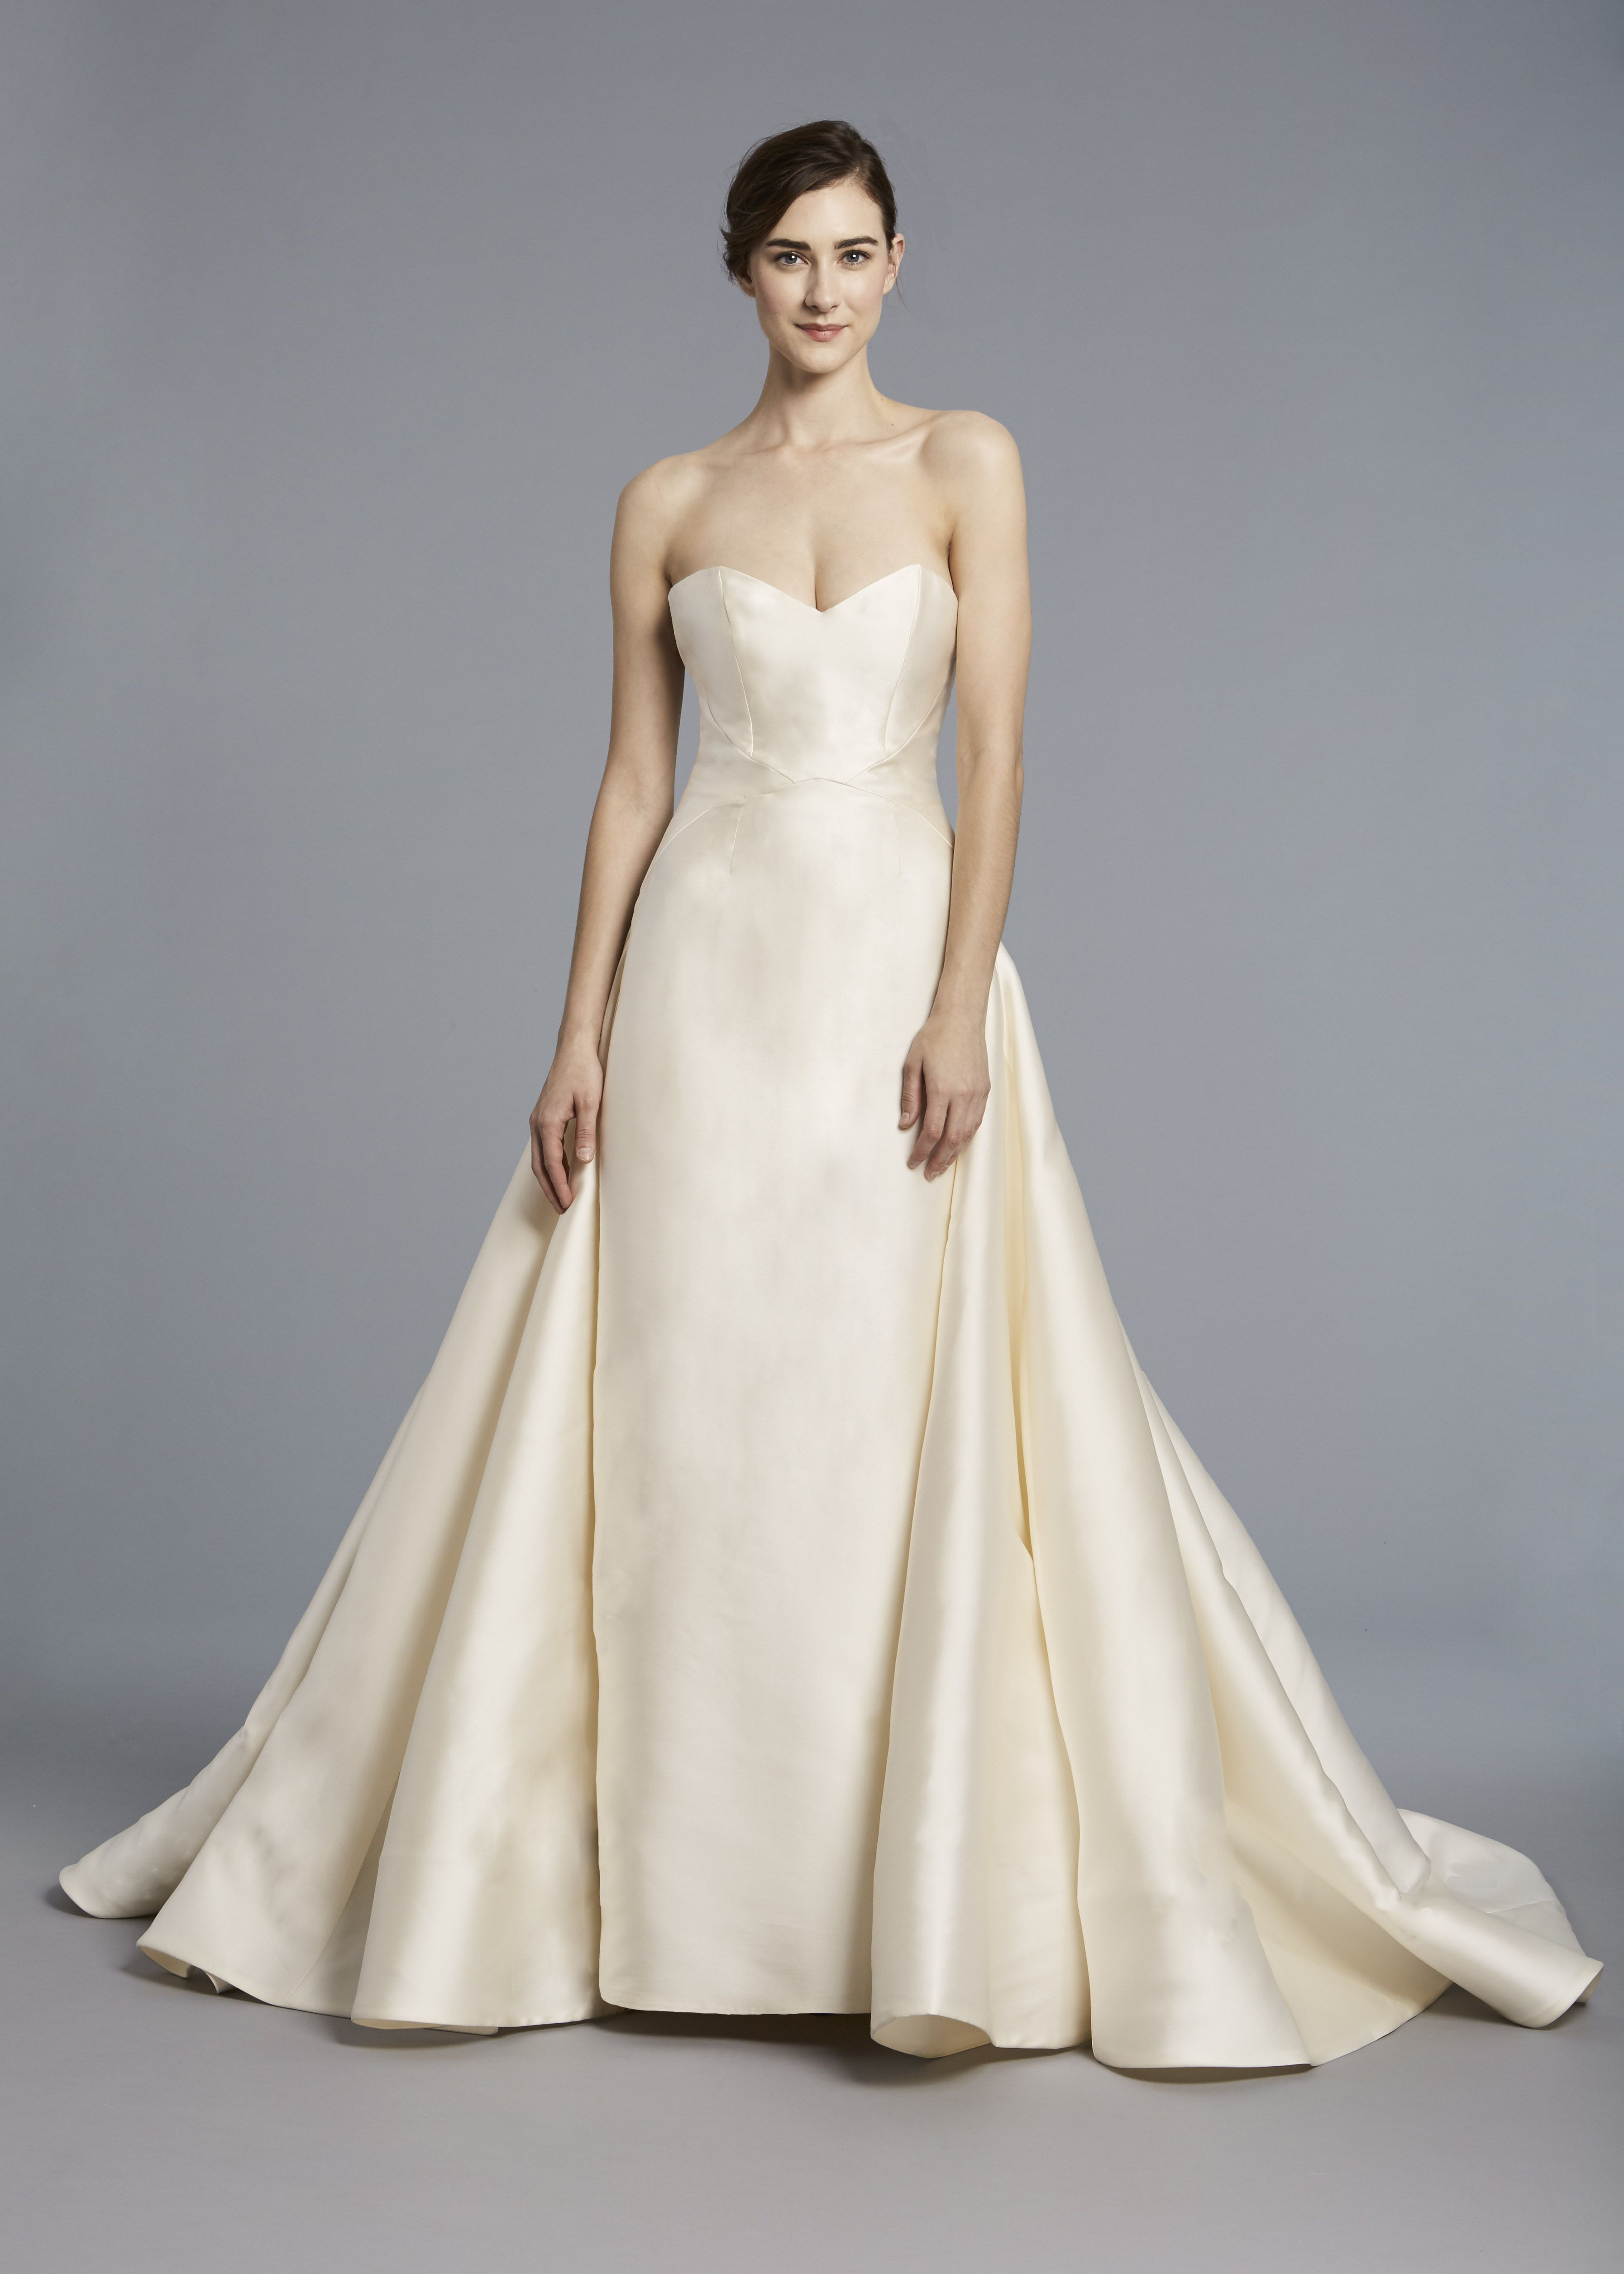 51b339d0e3df RADZIWILL - Anne Barge, Spring 2018 | Strapless sheath wedding dress  architecturally seamed with an attached overskirt of silk mikado